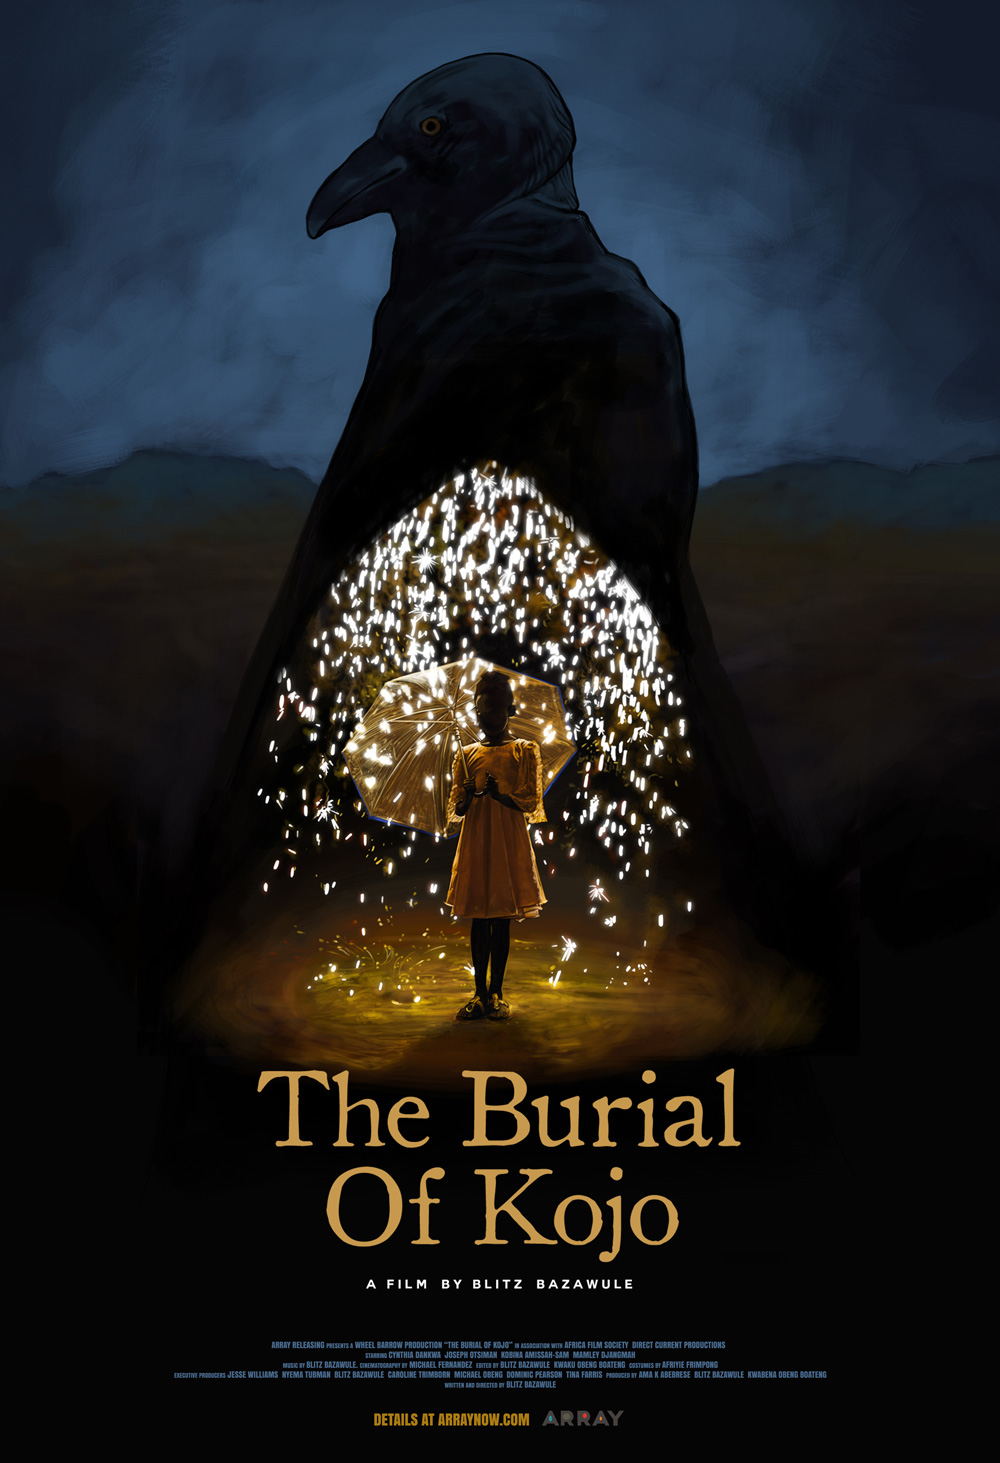 ARRAY_TheBurialOfKojoBird_DigitalPoster.jpg